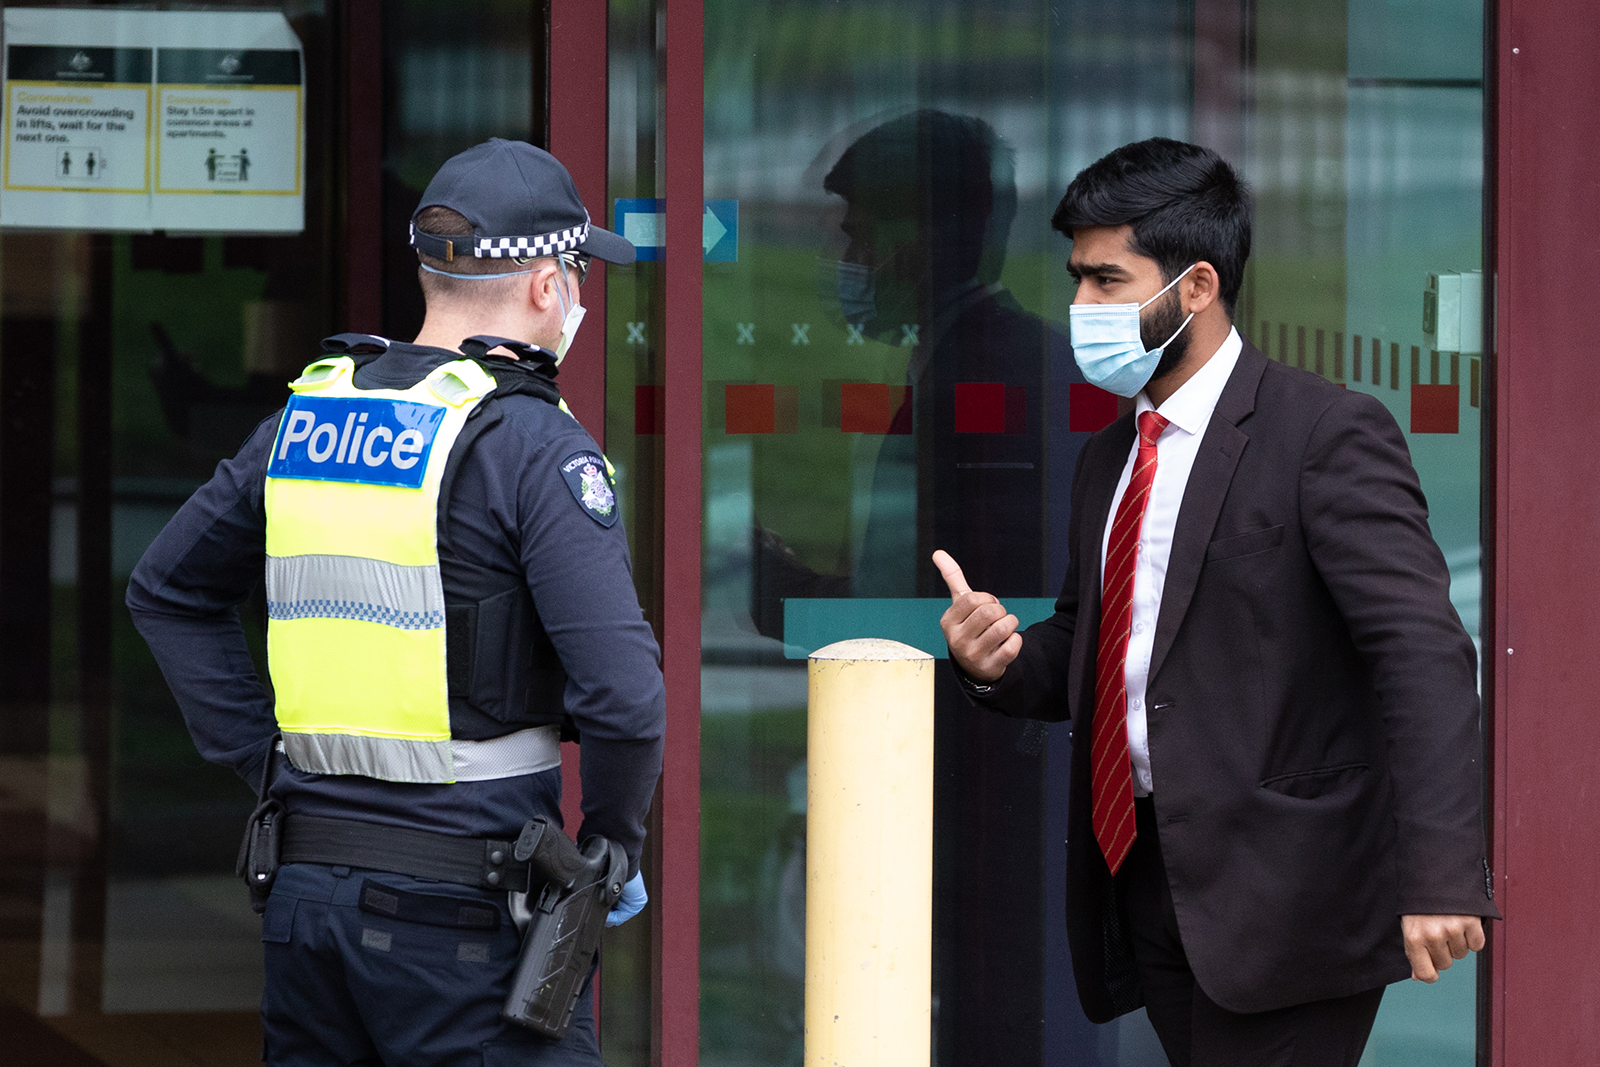 Police speak to a man outside the North Melbourne Public housing flats on July 5, in Melbourne, Australia.